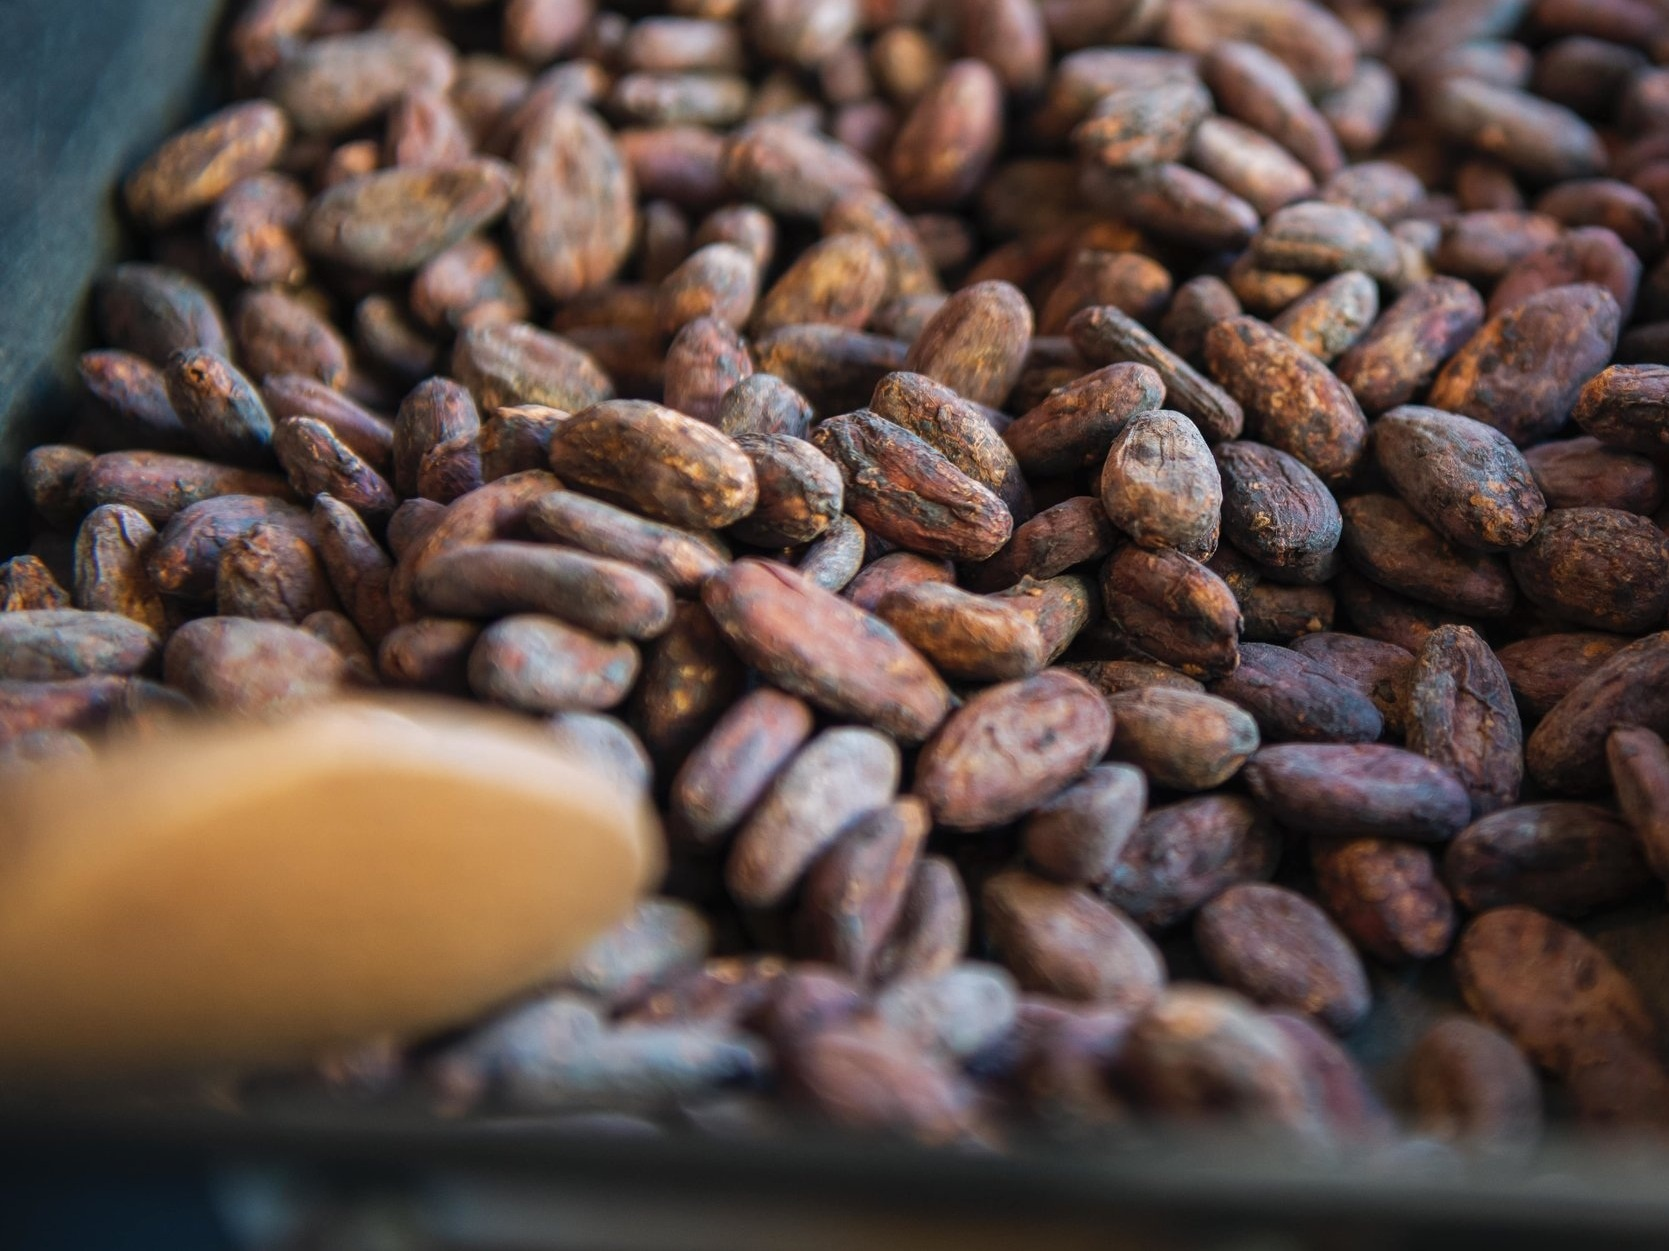 Roasting - We roast our beans to get the perfect flavour from our product. Every origin needs its own roasting time and temperature to get the very best flavours from it.